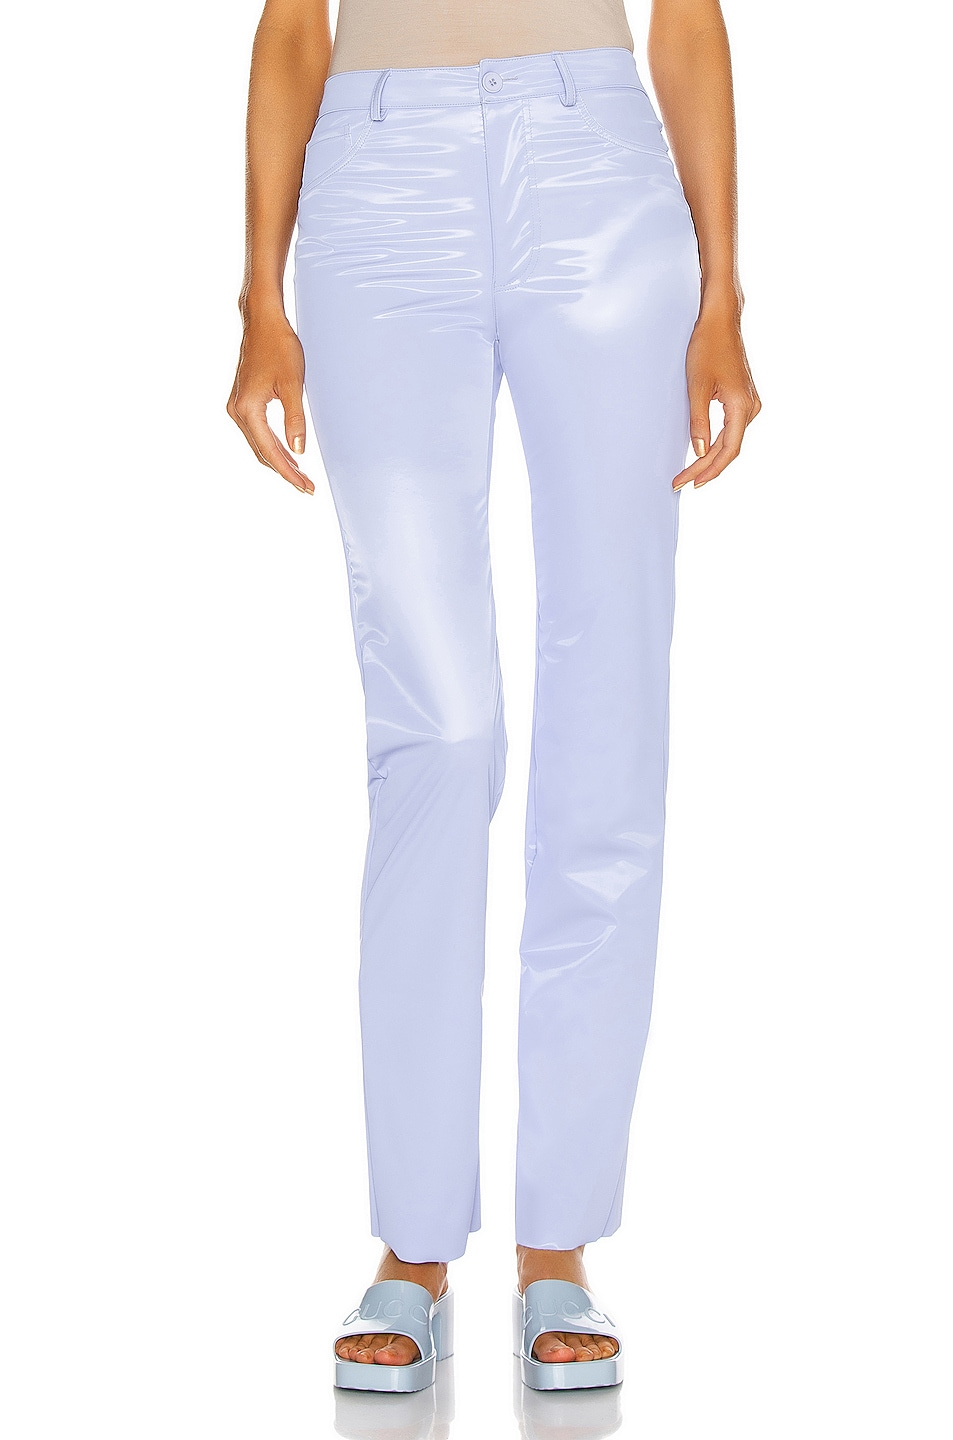 Image 1 of Maisie Wilen Galleria Pant in Lavender